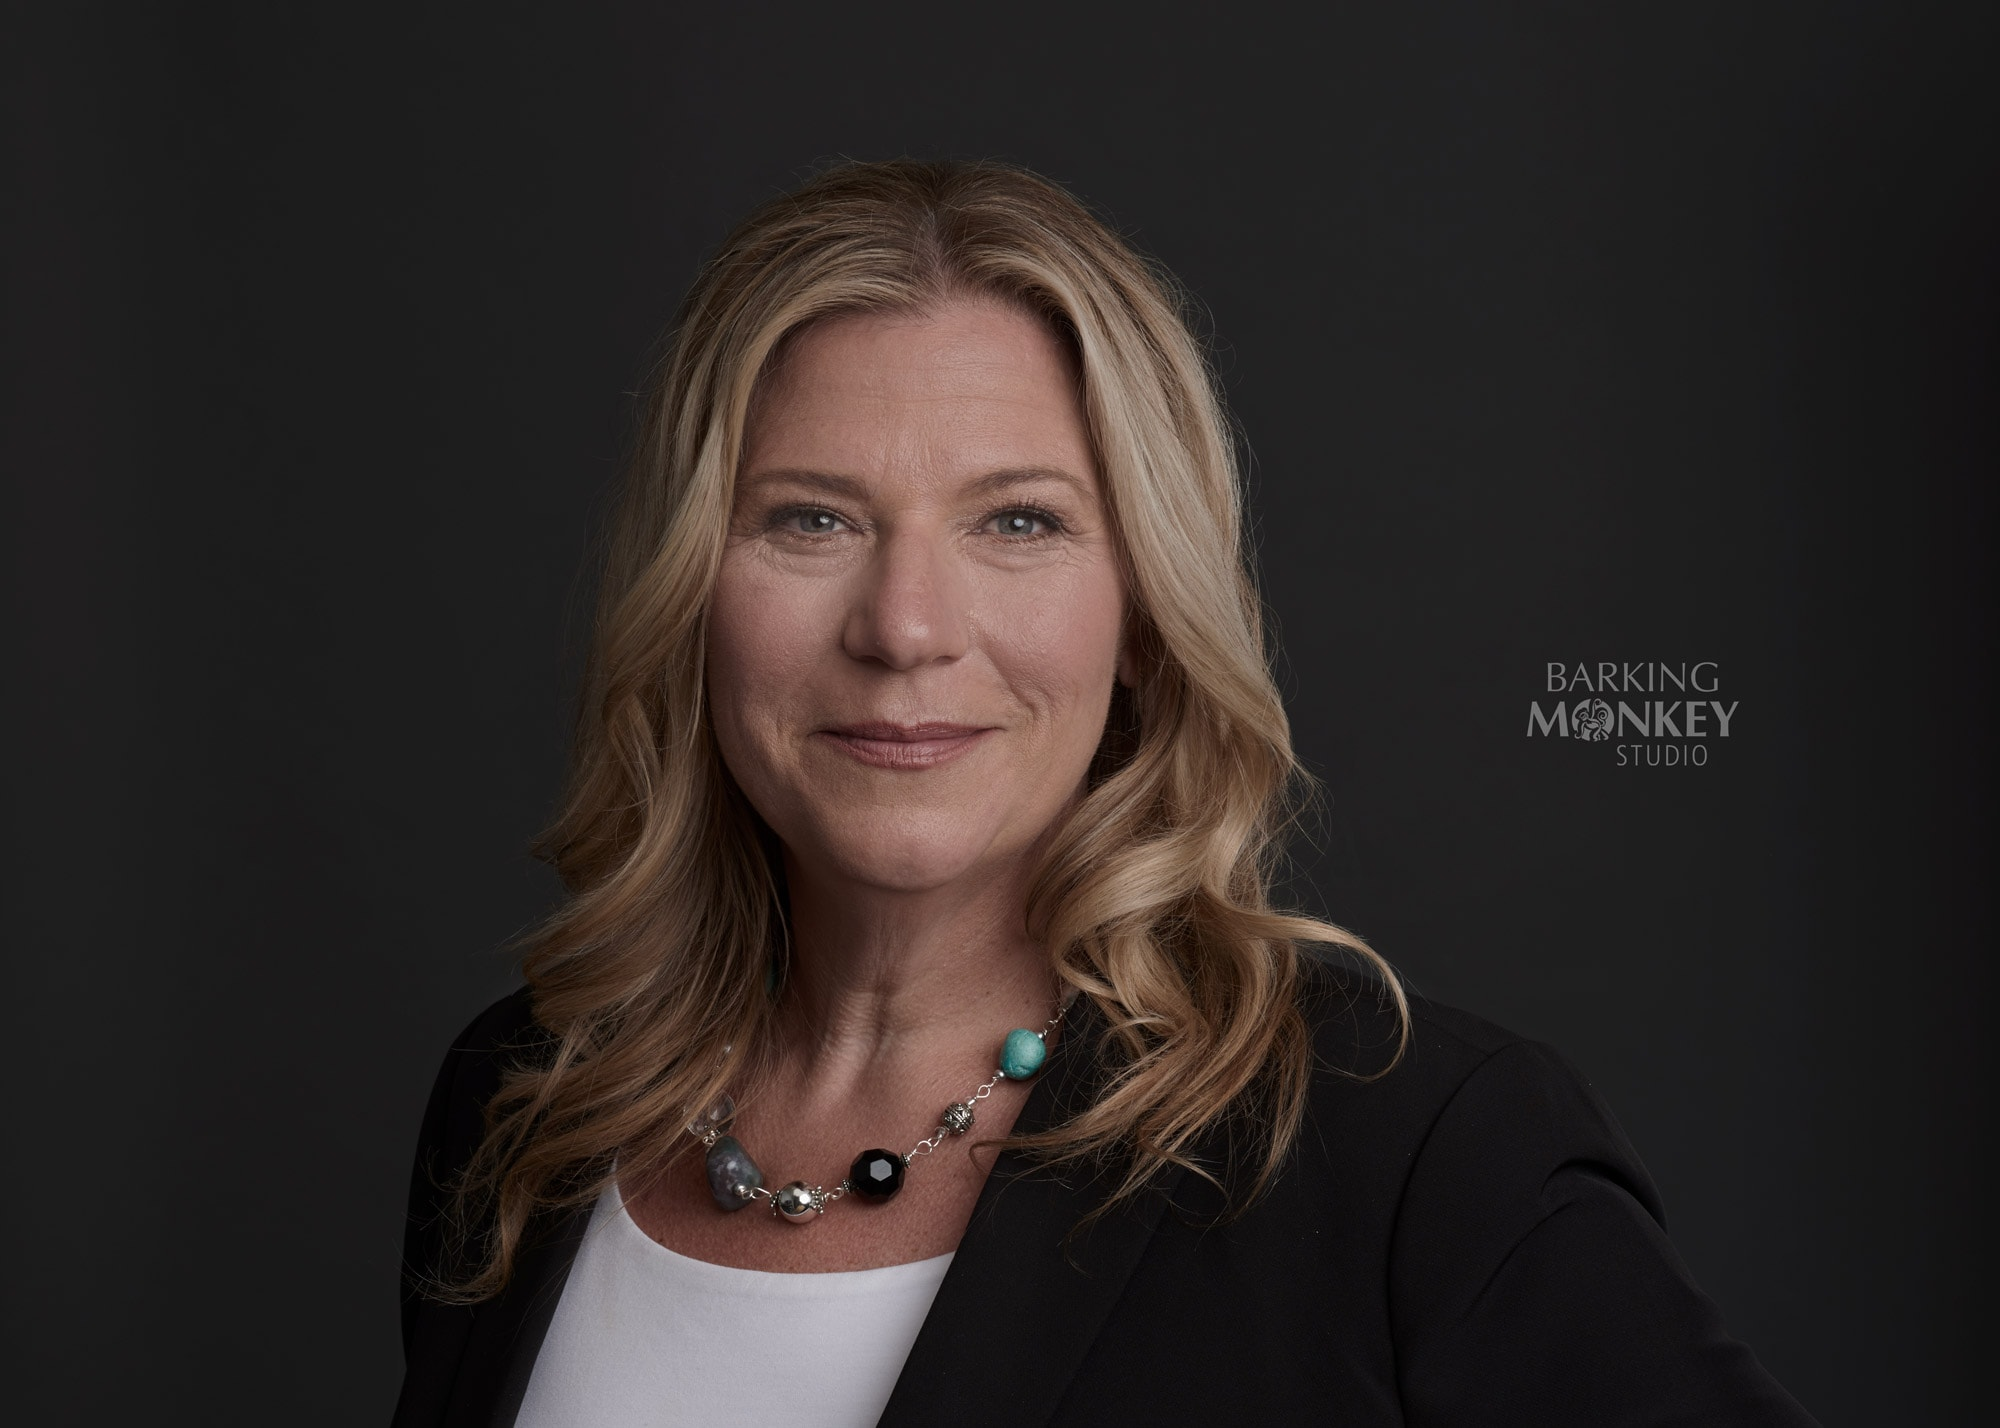 female business portrait headshot ottawa